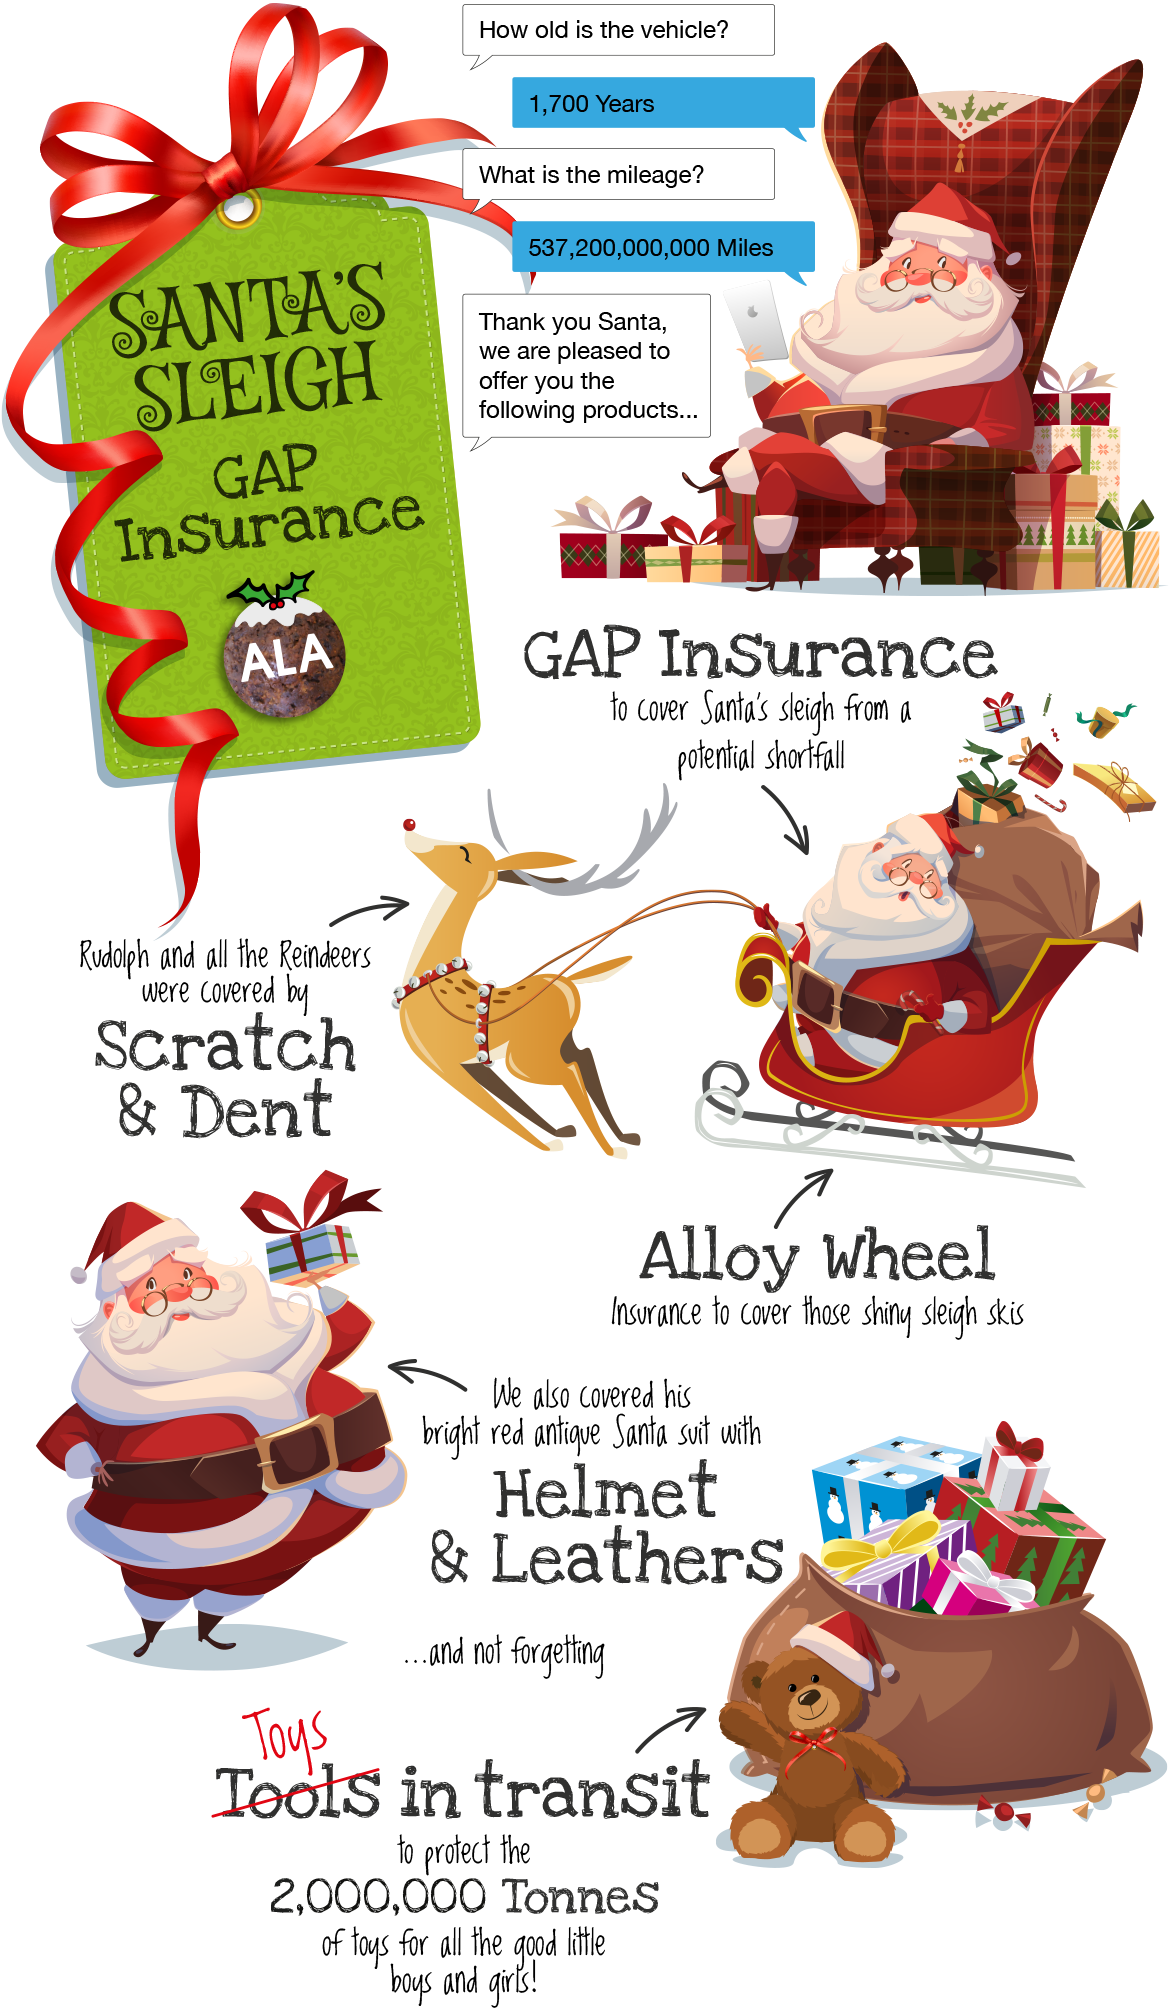 Santa's Sleigh GAP Insurance